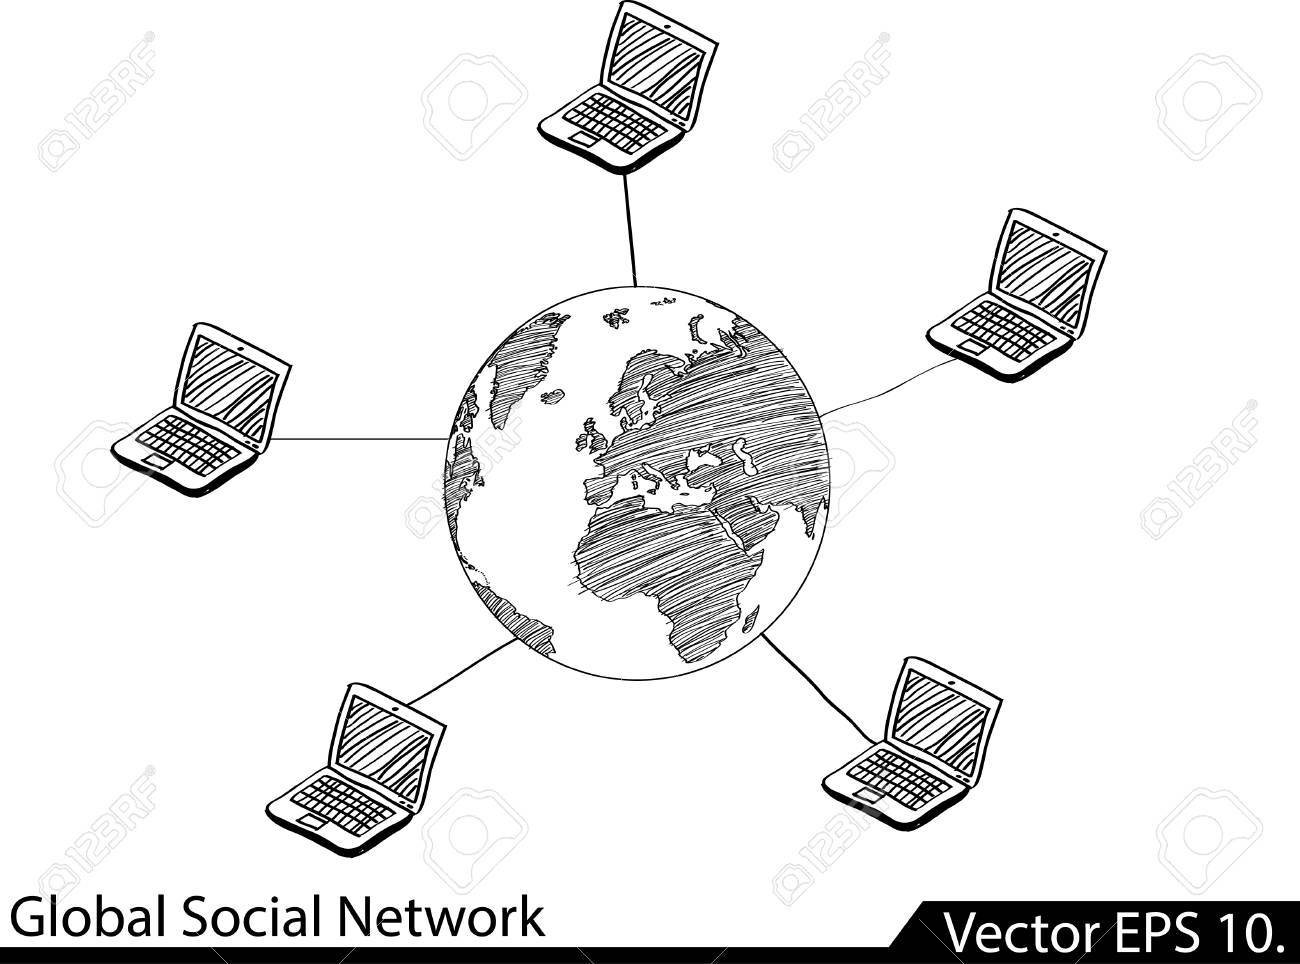 Lan network diagram vector illustrator eps 10 for business lan network diagram vector illustrator eps 10 for business and technology concept stock vector ccuart Image collections